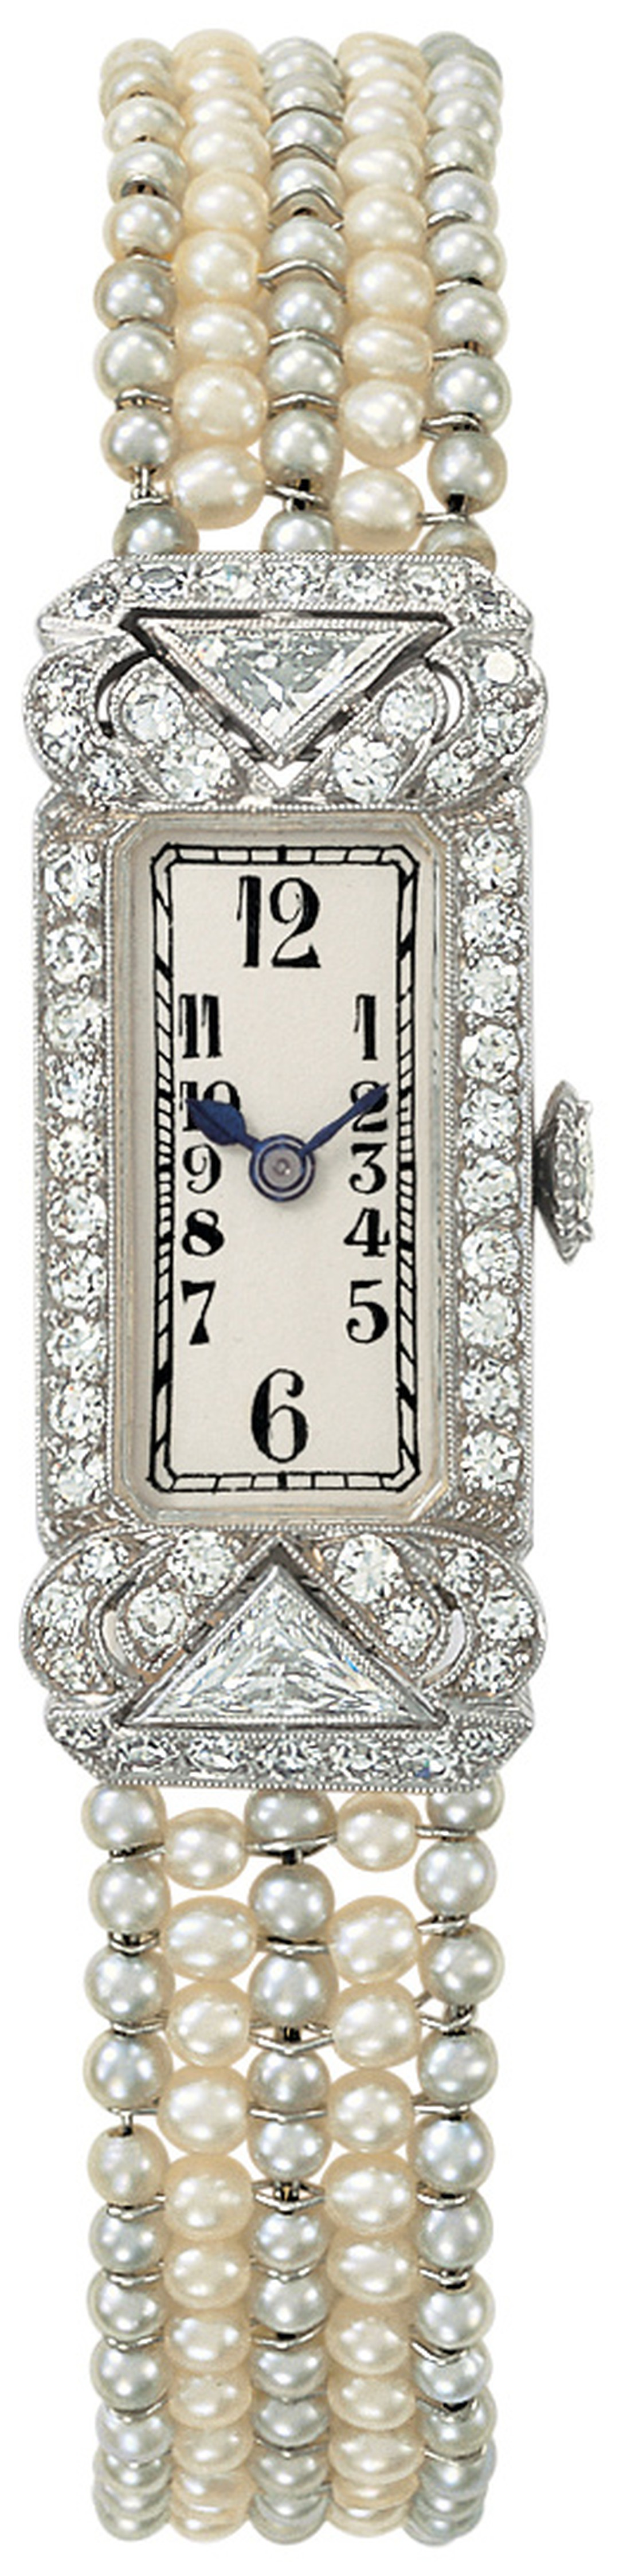 Patek-Philippe-P0641_a_100_collection_1925-40.jpg